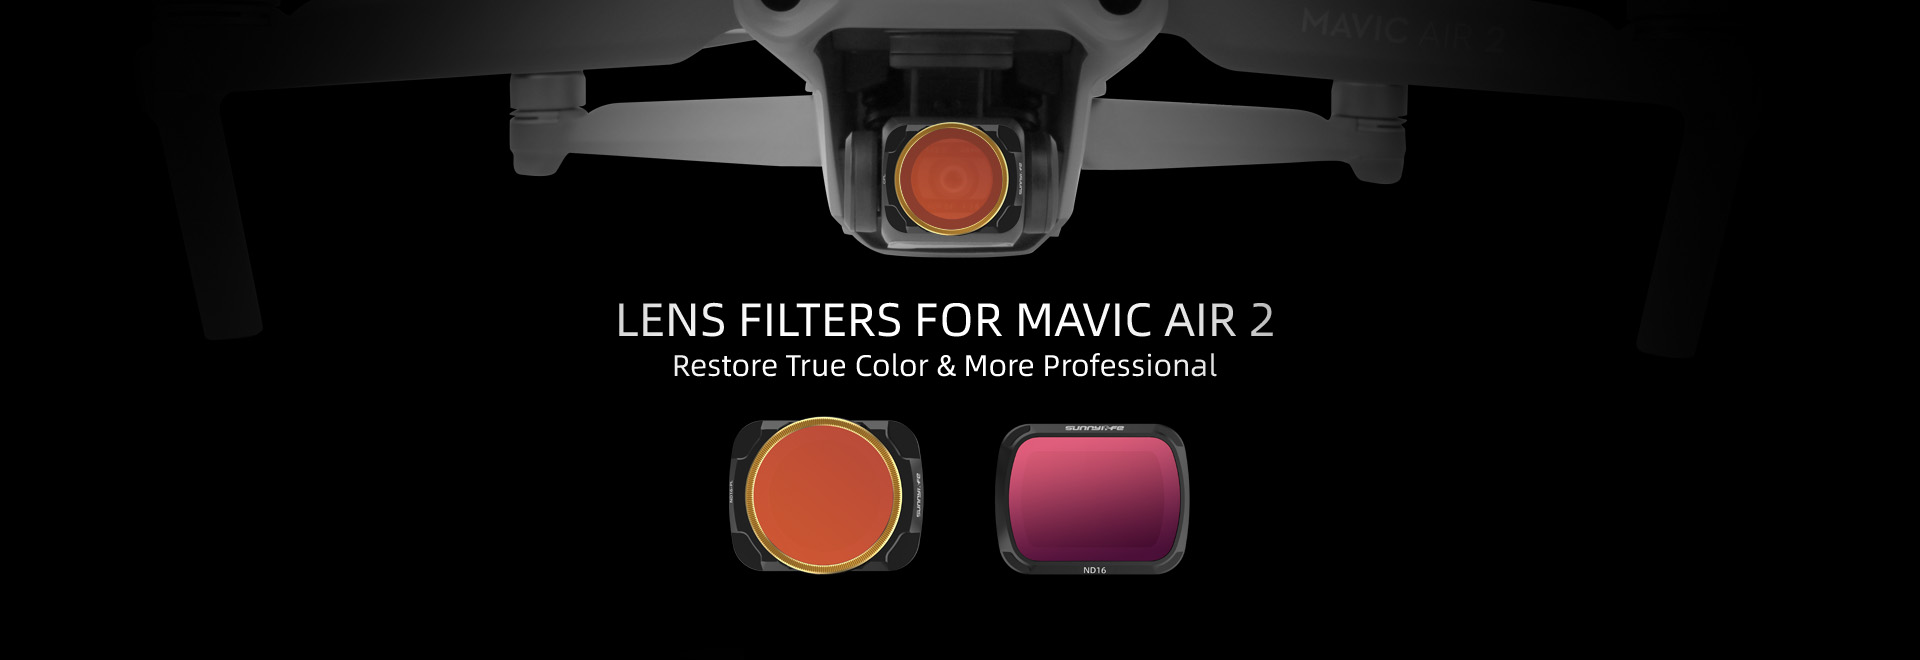 Lens Filter for Mavic Air 2